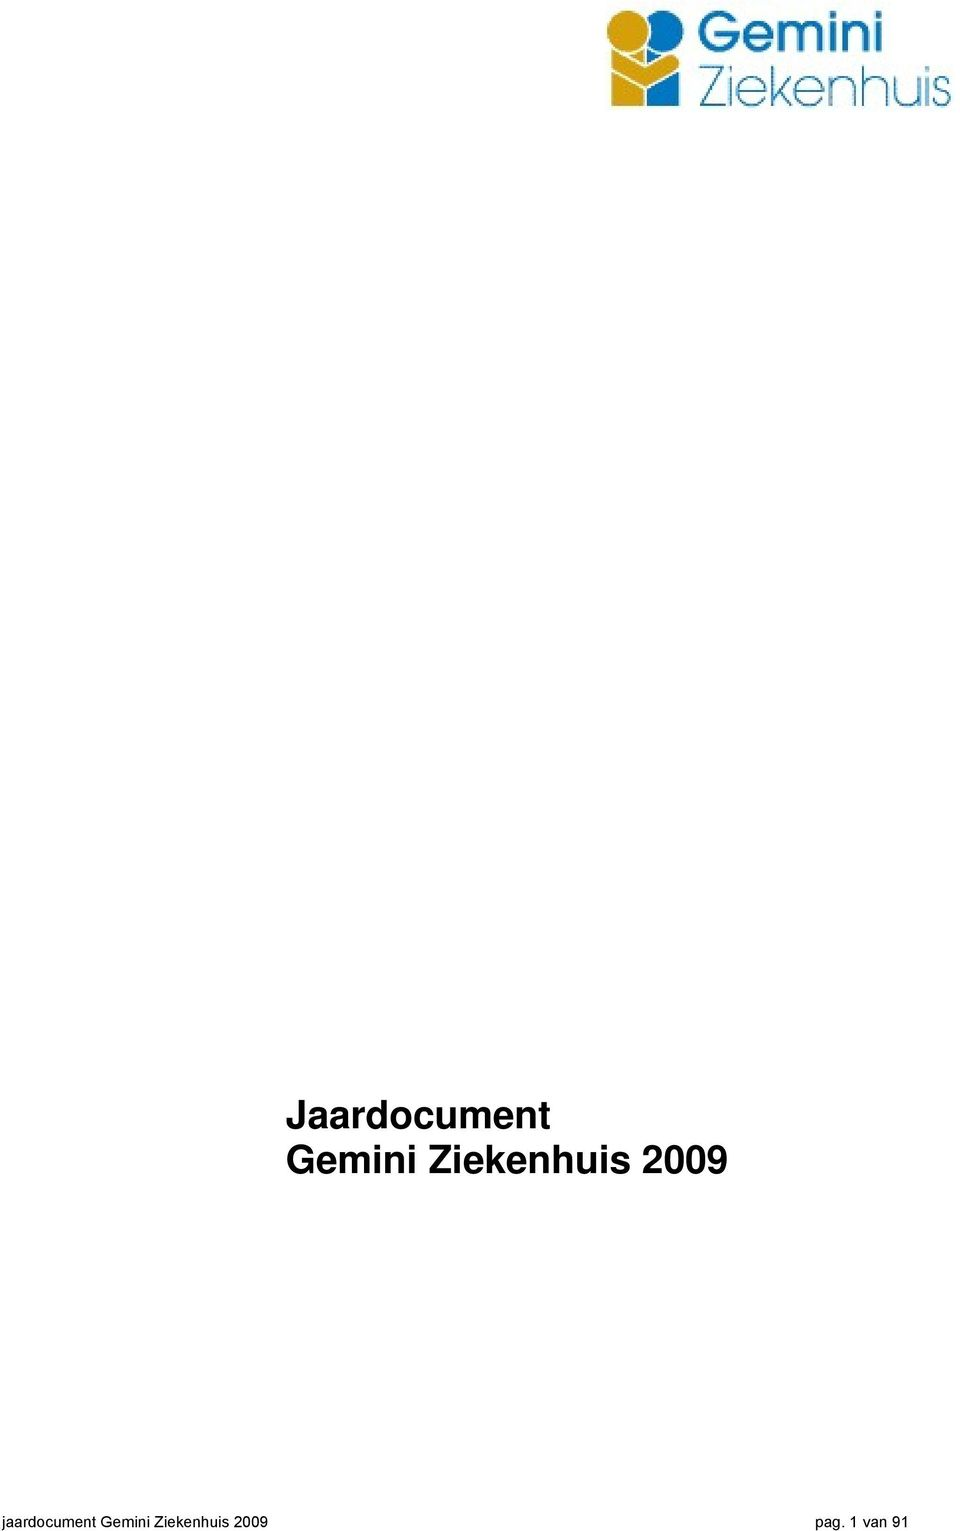 jaardocument Gemini